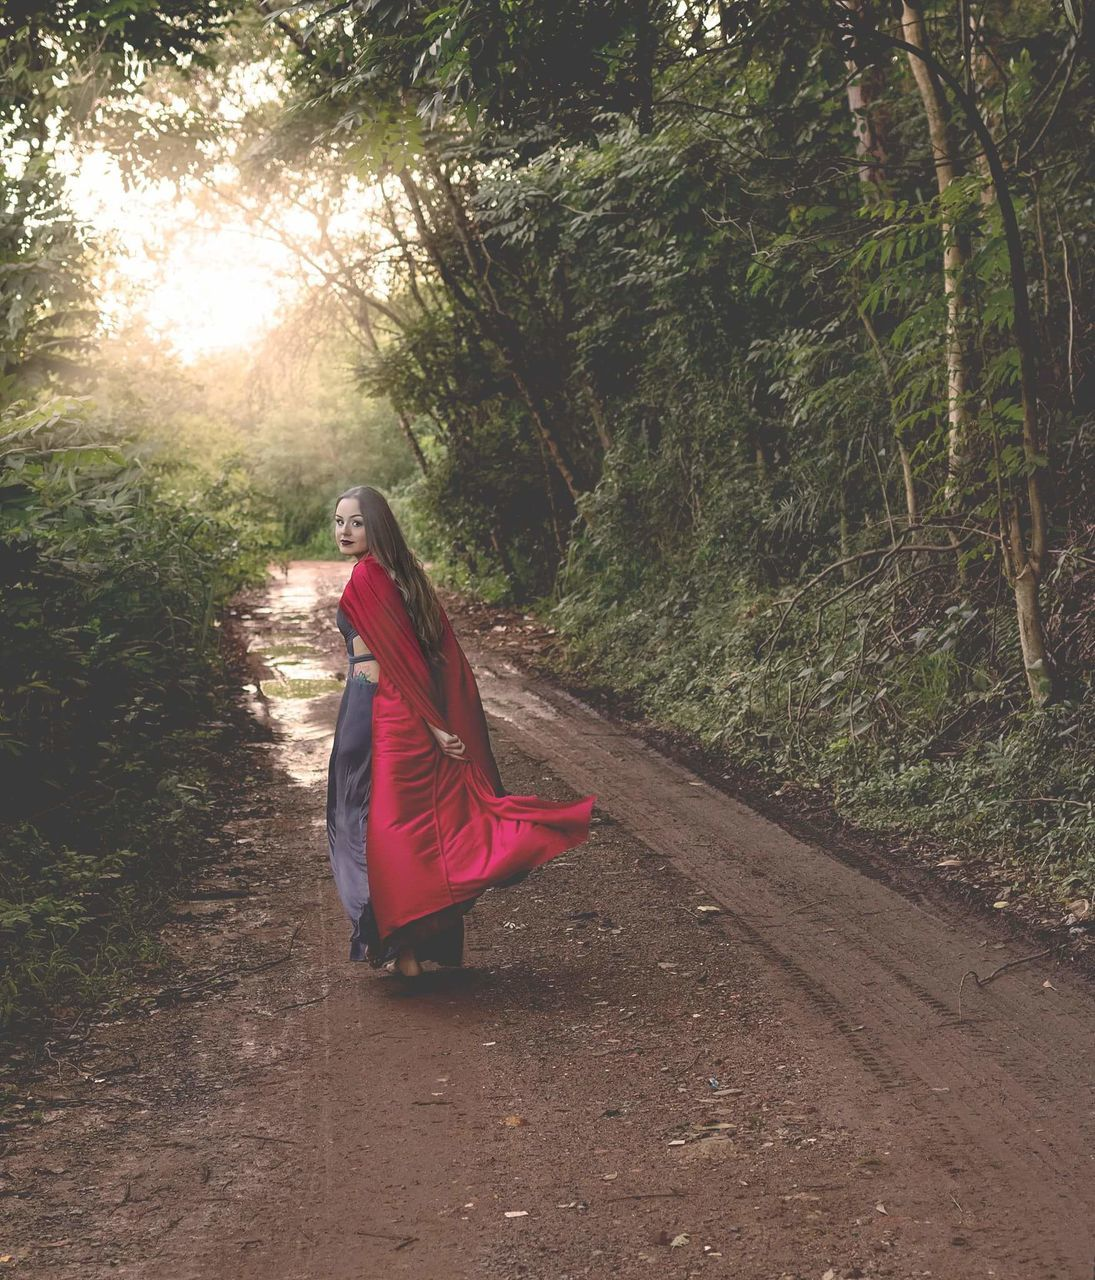 tree, red, forest, day, growth, outdoors, full length, real people, nature, one person, people